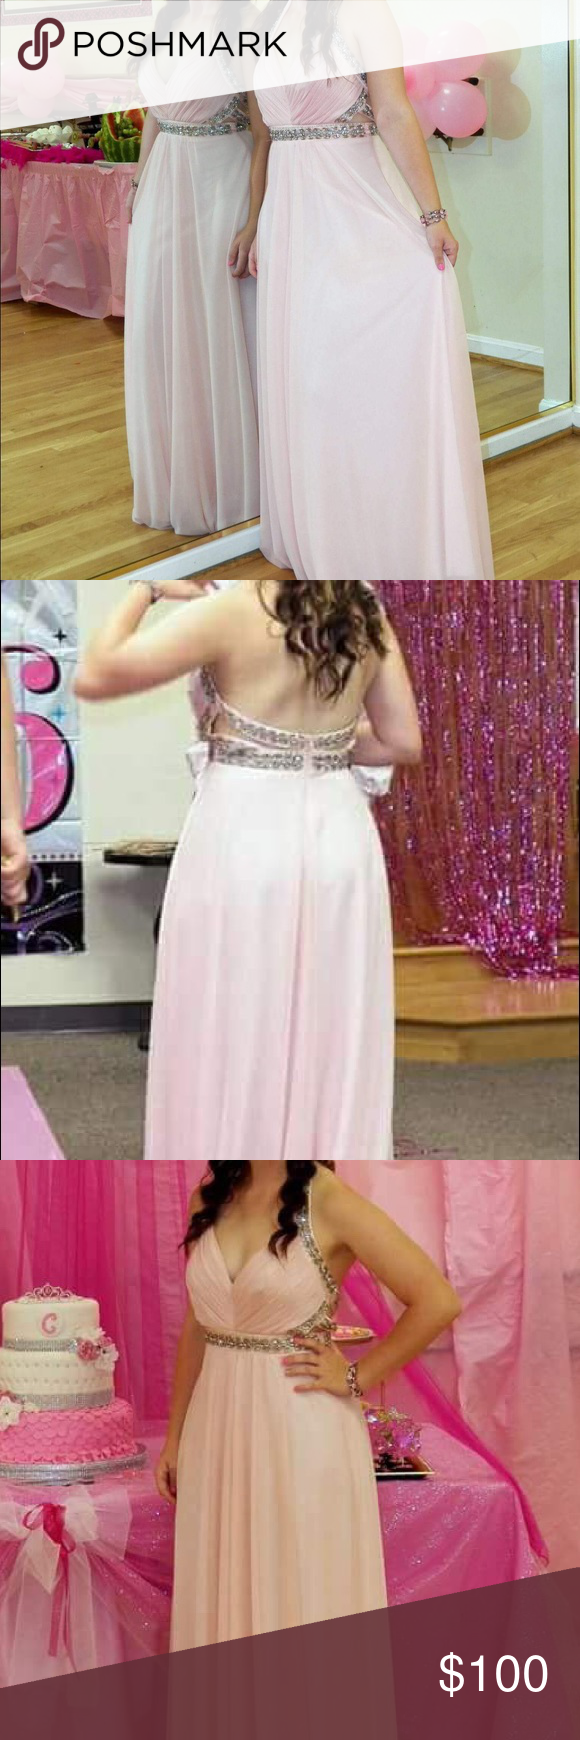 Light pink sparkly sweet sixteenprom dress my posh picks